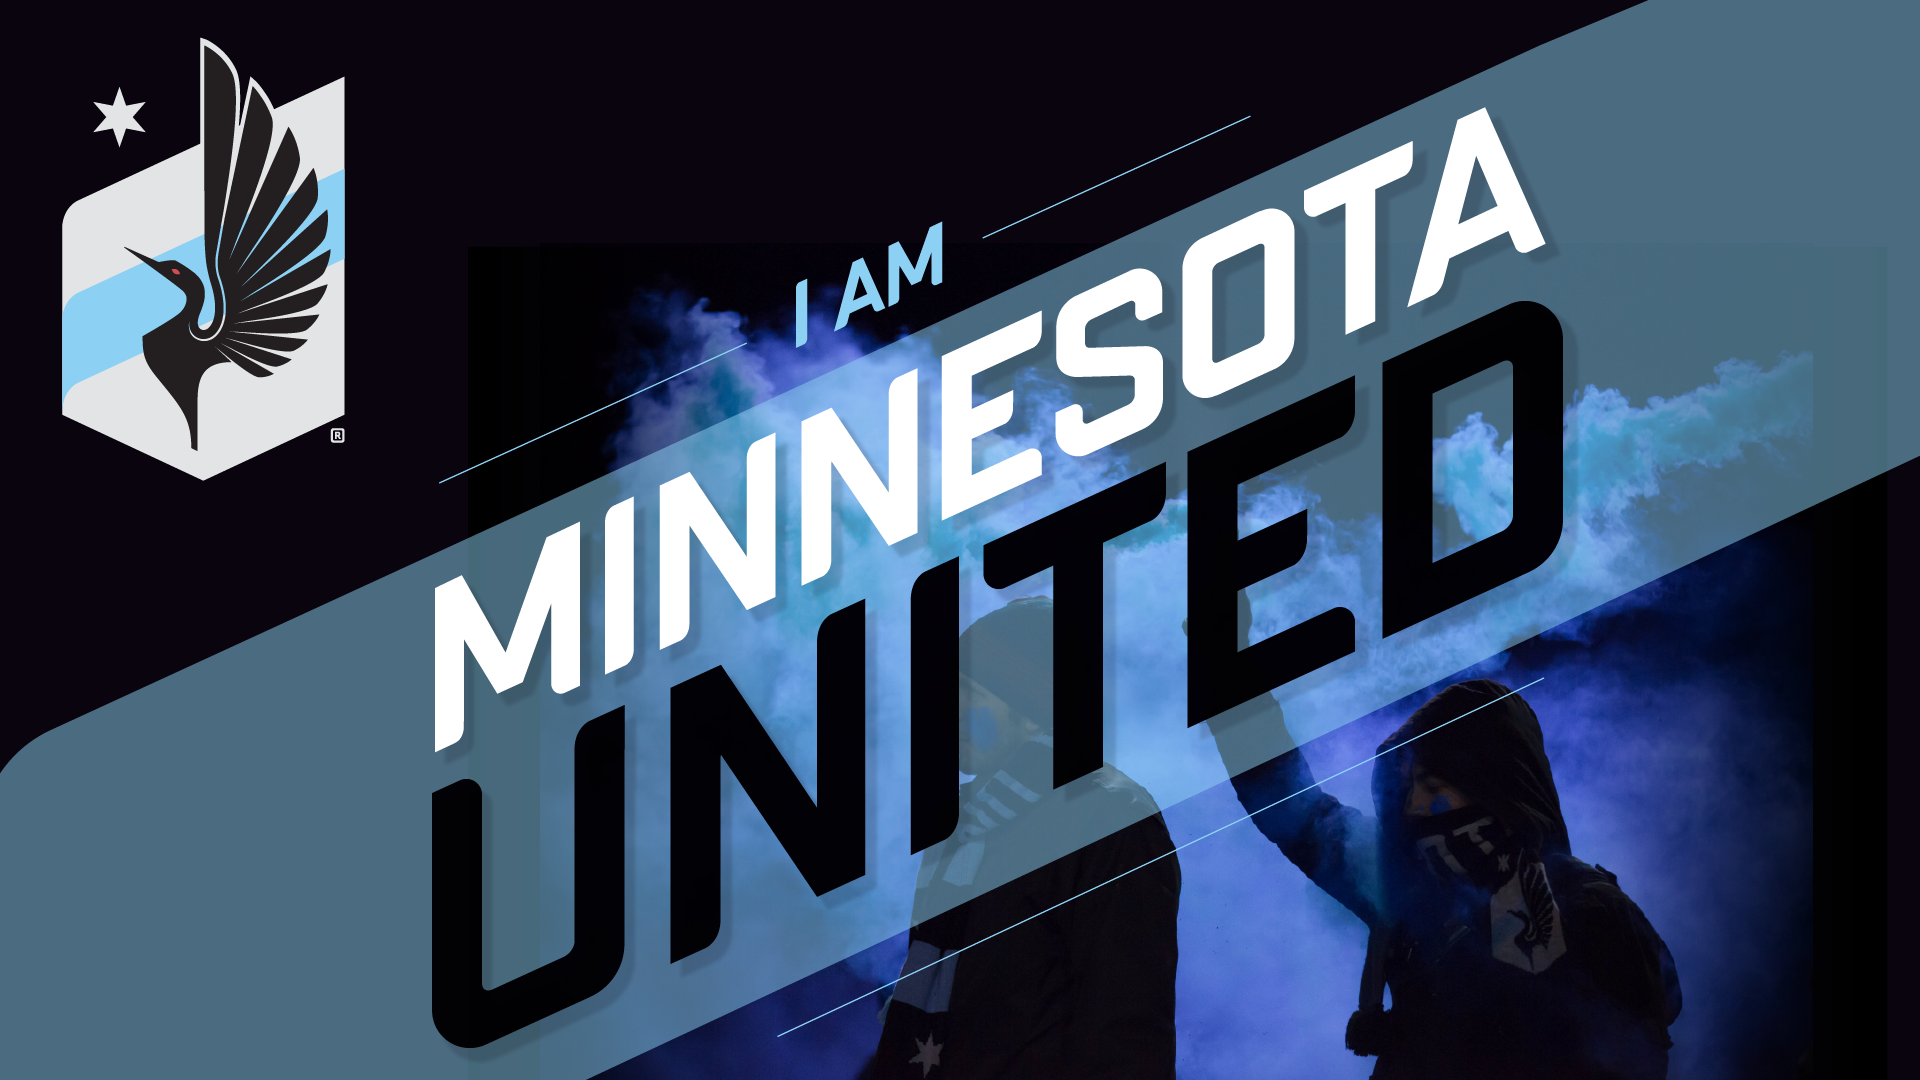 Wallpapers Minnesota United FC MLS   MNUFC Loons Minnesota 1920x1080